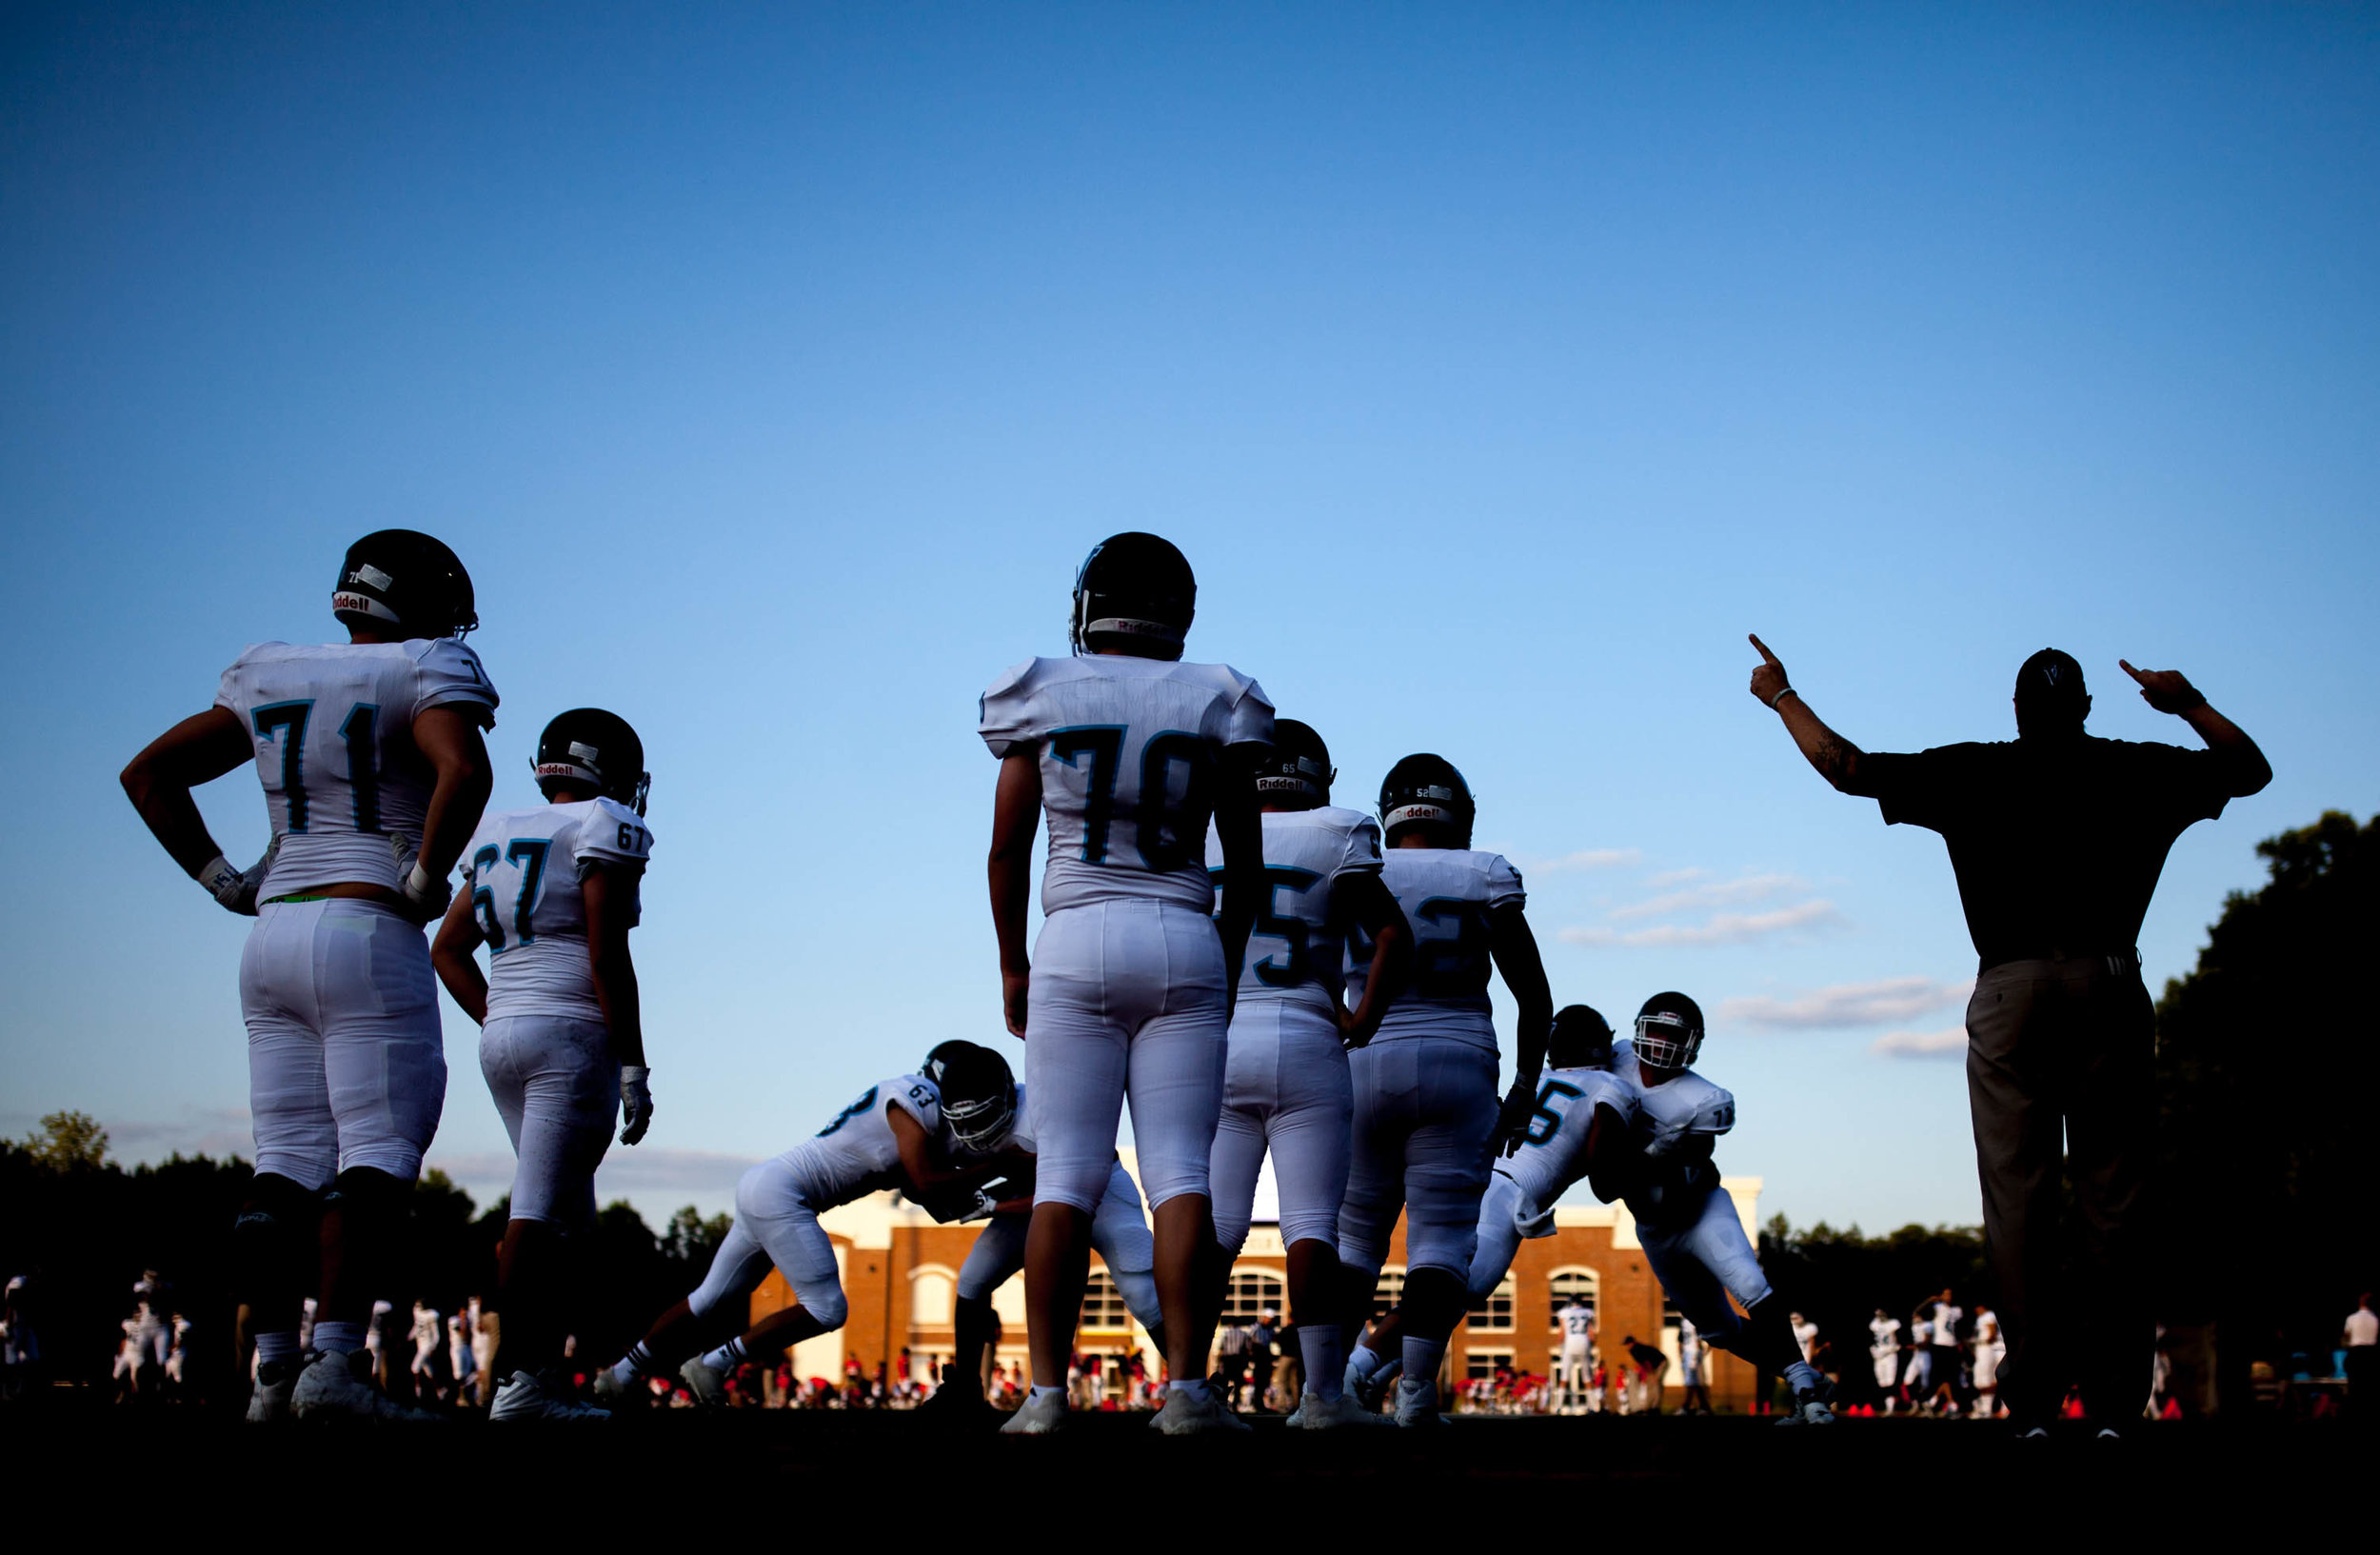 Valor Christian football players of Colorado warm up before a high school football game against Greater Atlanta Christian School, Friday, Sept. 8, 2017, in Norcross, Ga. Branden Camp for The AJC